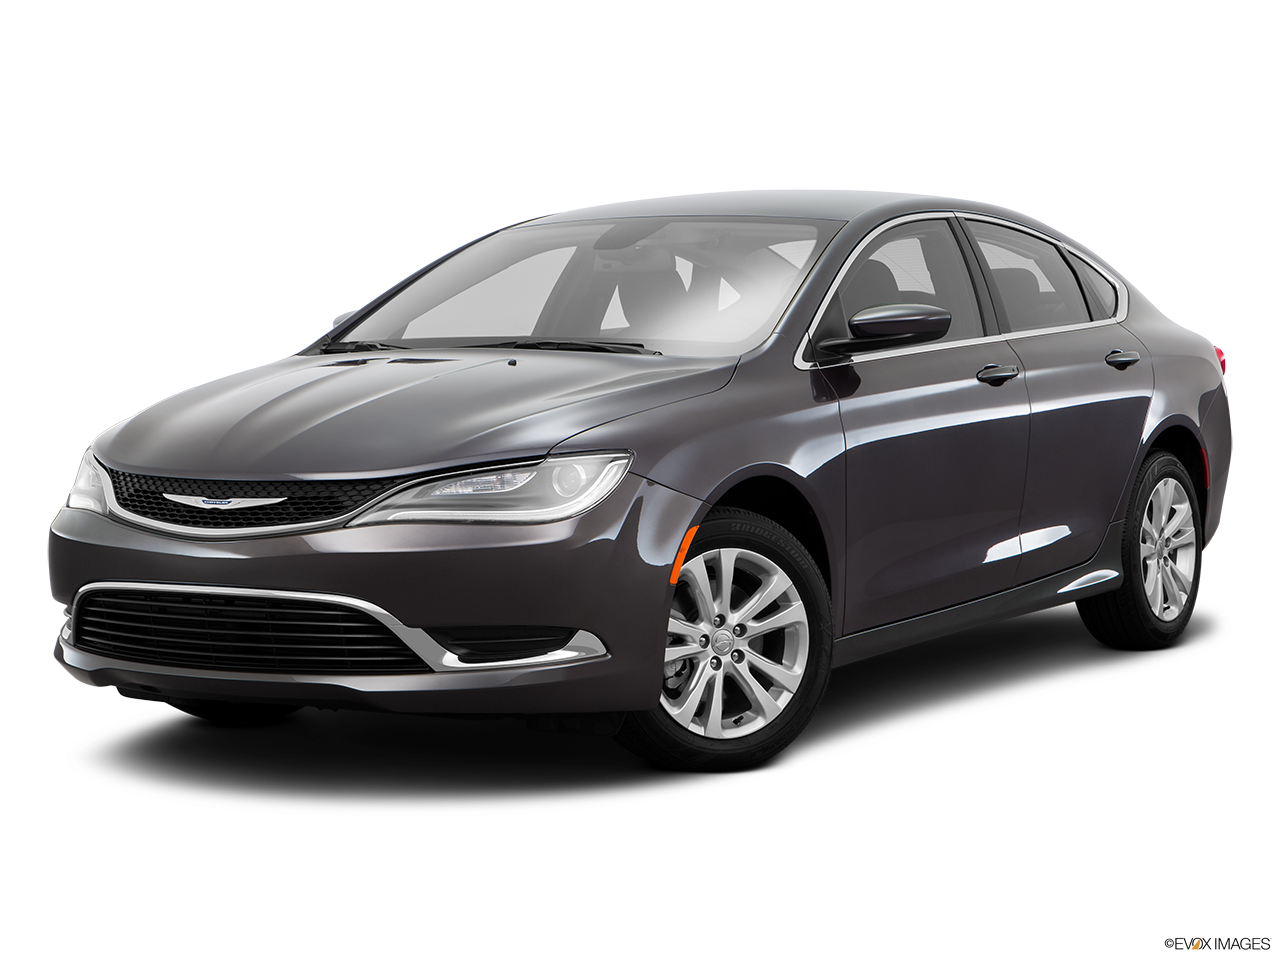 Test Drive A 2016 Chrysler 200 at Moss Bros Chrysler Dodge Jeep Ram Moreno Valley in Moreno Valley